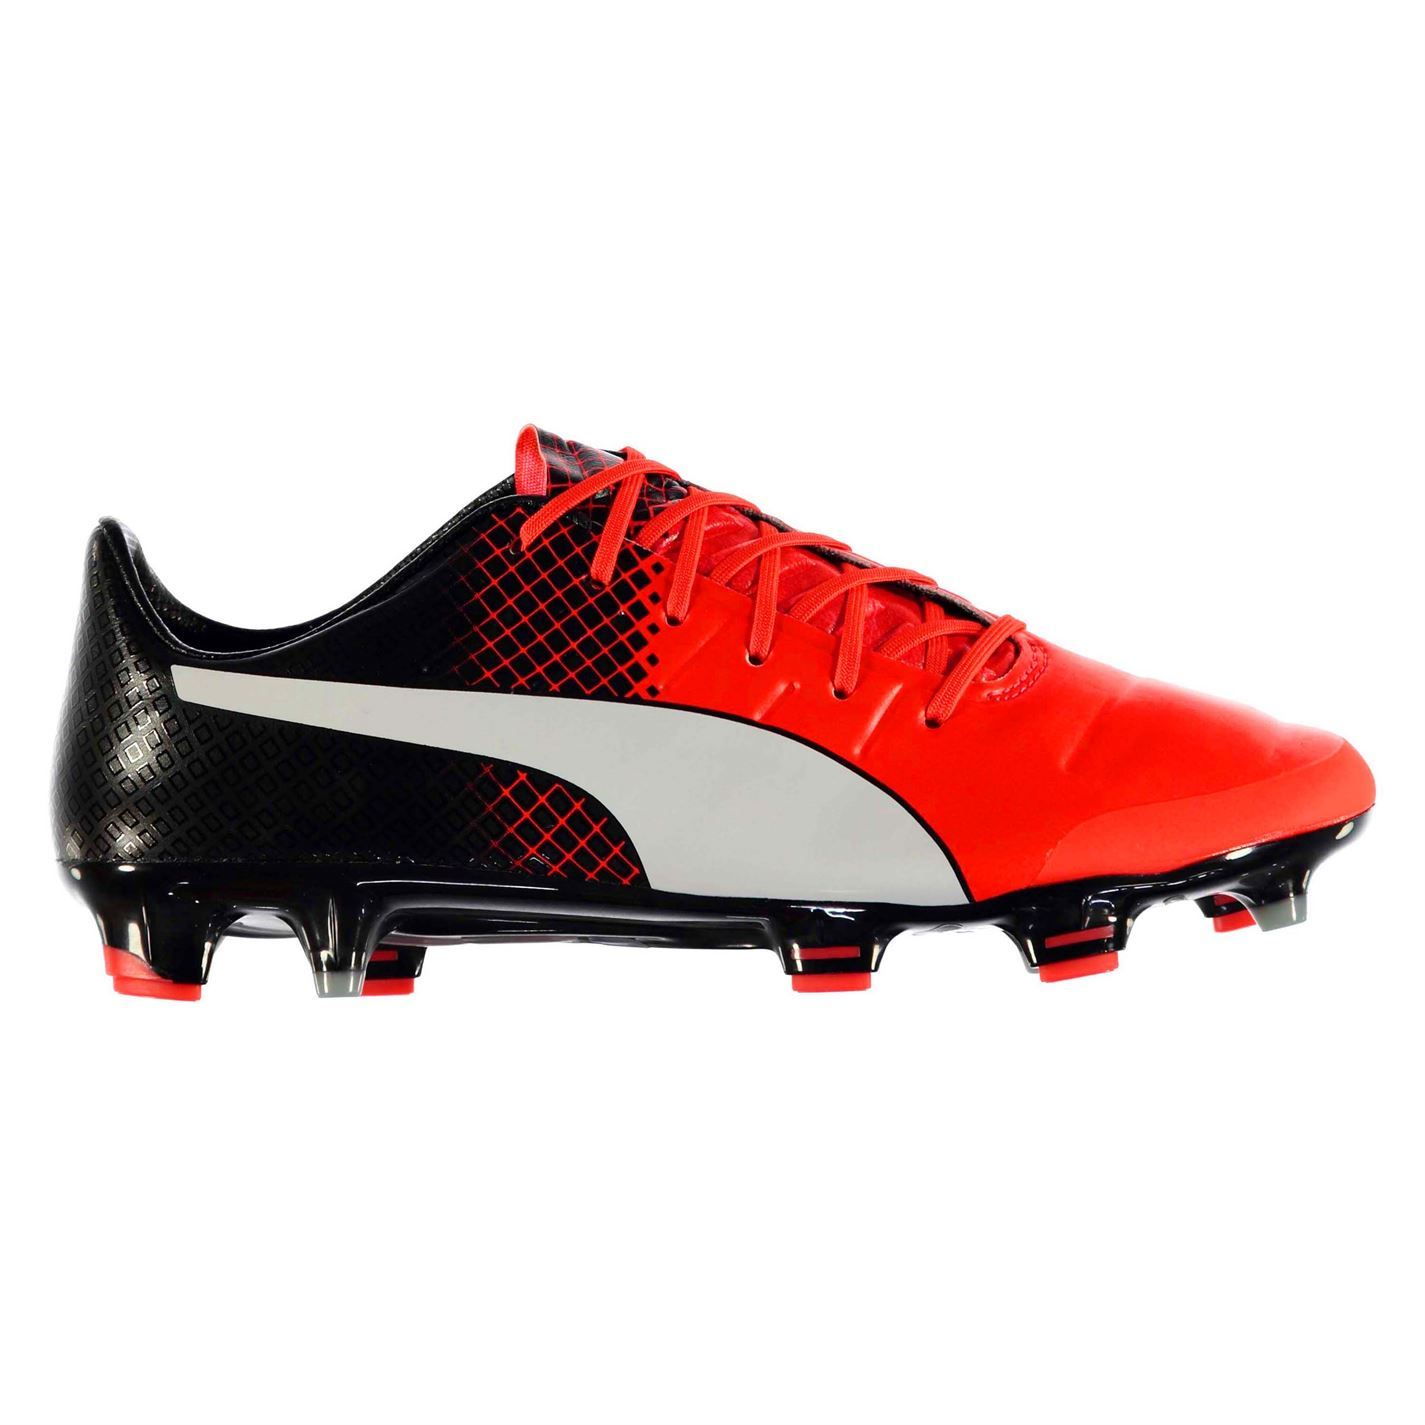 efe9975645bb ... Puma EvoPower 1.3 FG Firm Ground Football Boots Mens Rd Blk Soccer  Cleats Shoes ...